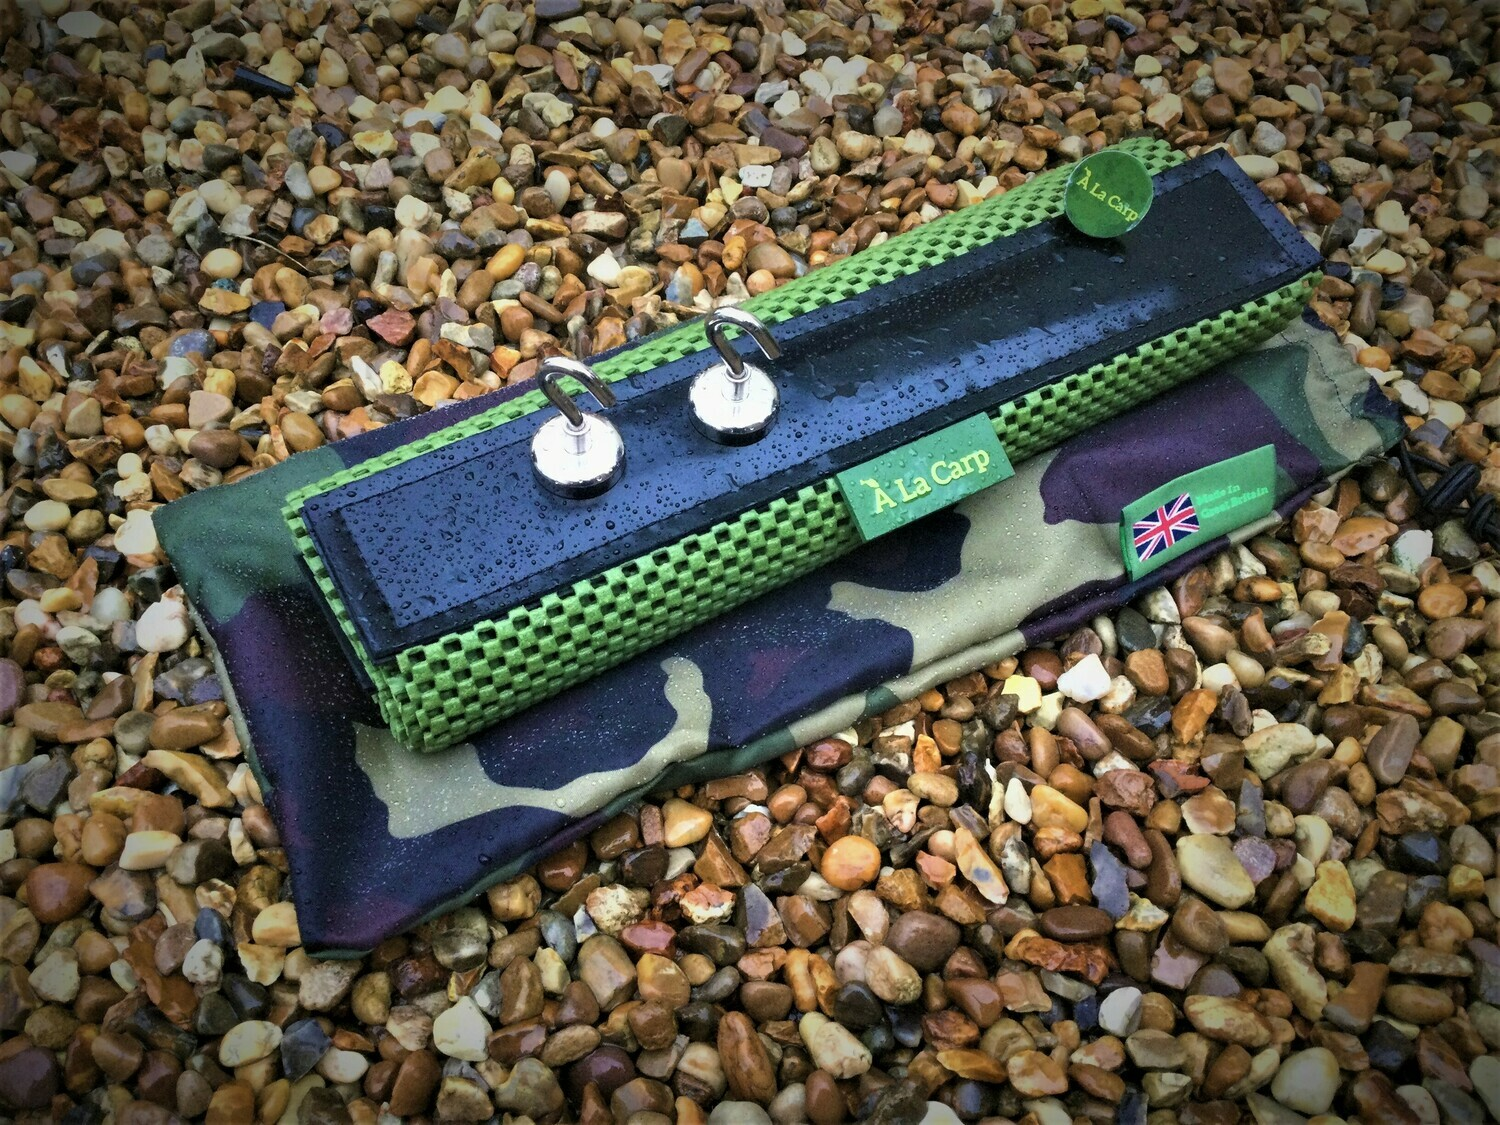 BUNDLE DEAL - Bivvy Top Work Mat Includes x3 Magnetic Hooks